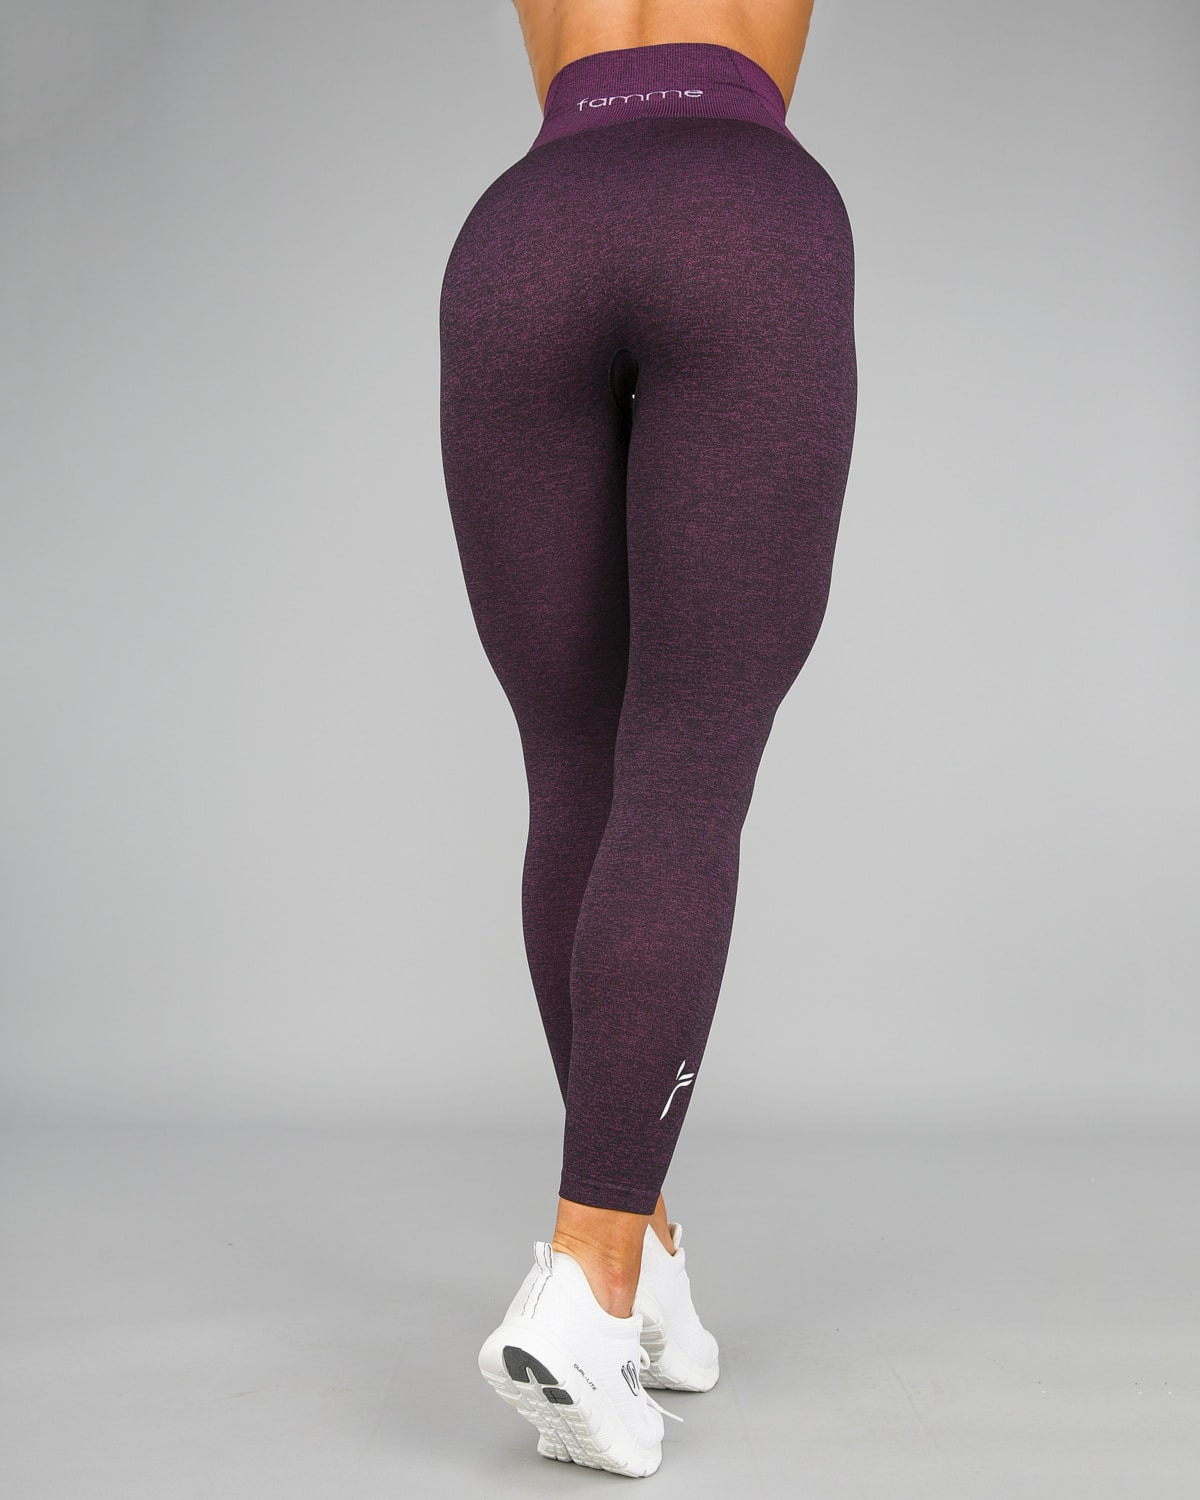 FAMME Lavender Seamless Essential Tights4